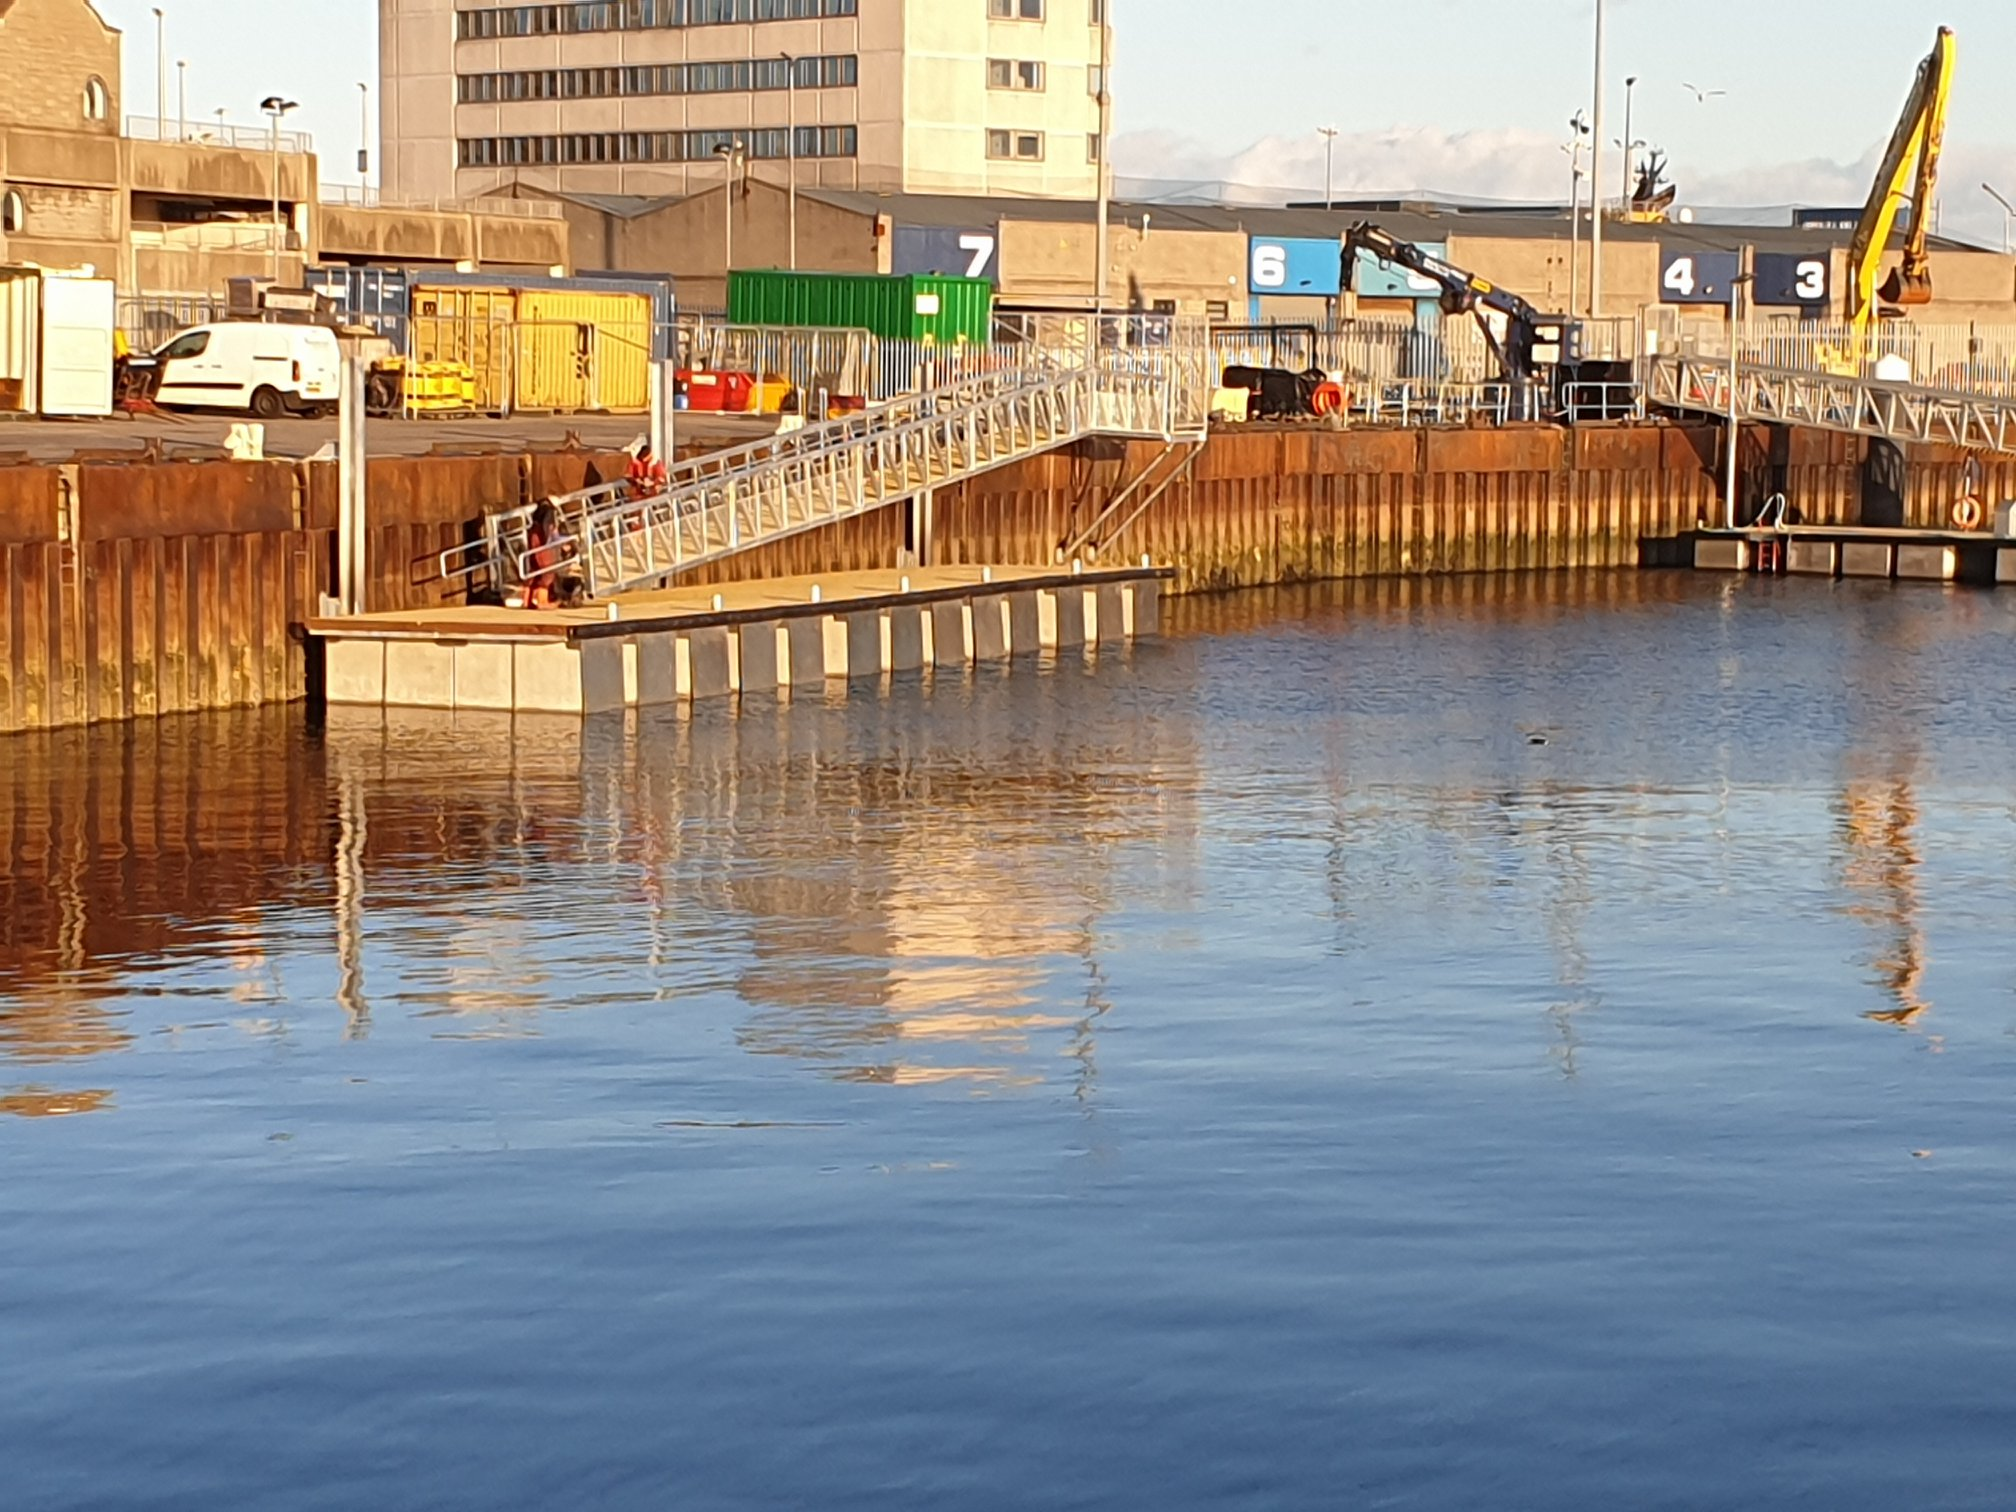 Pontoons in Aberdeen Harbour